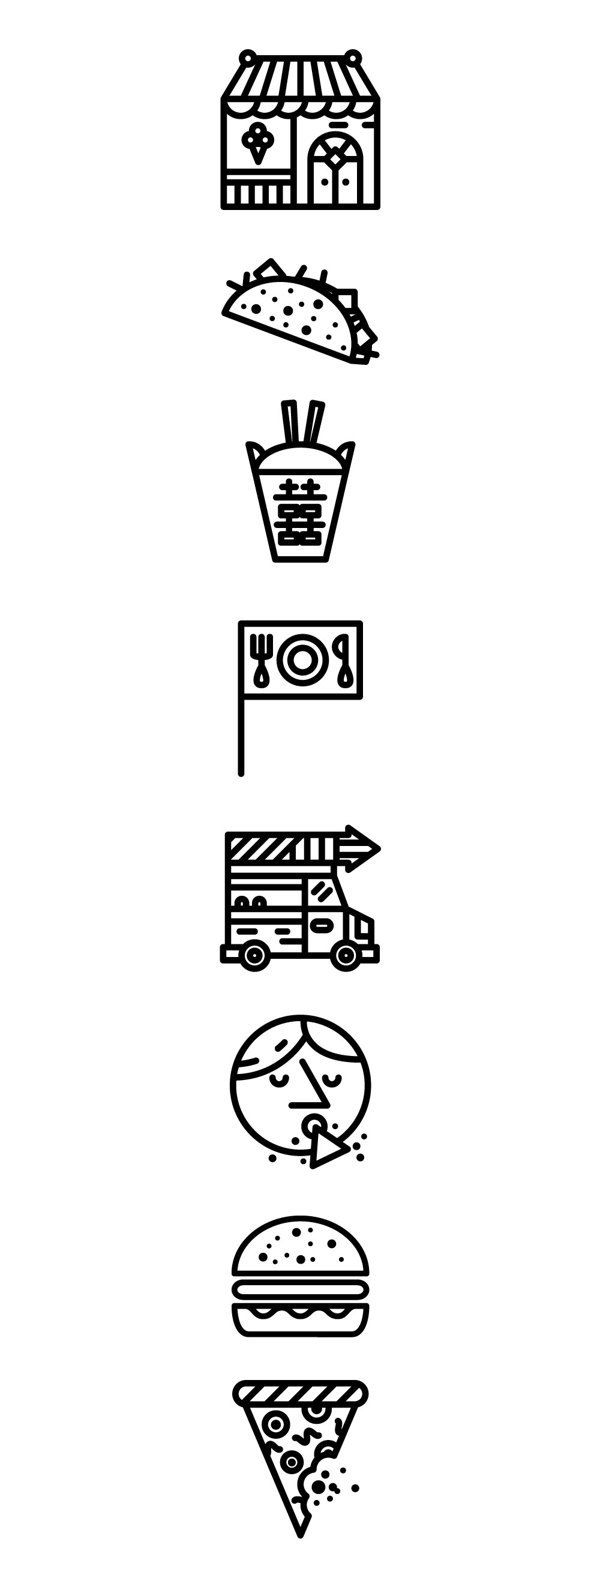 New York Mag Icons, Diggin this as an icon system for the different categories. I like the rounded lines, seems friendly